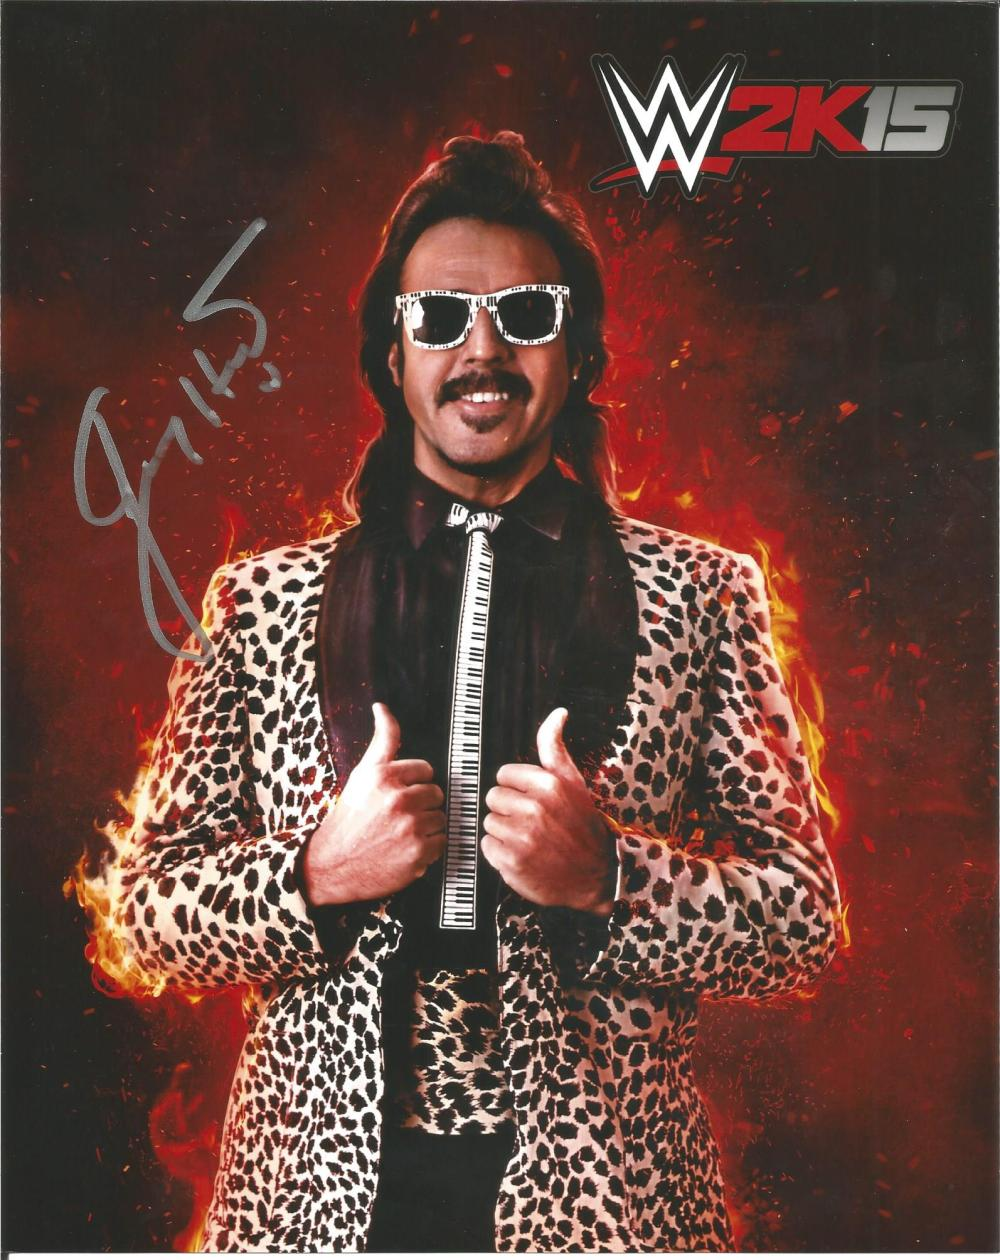 Lot of 3 WWF Wrestling hand signed 10x8 photos. This beautiful set of 3 hand-signed WWF Wrestling